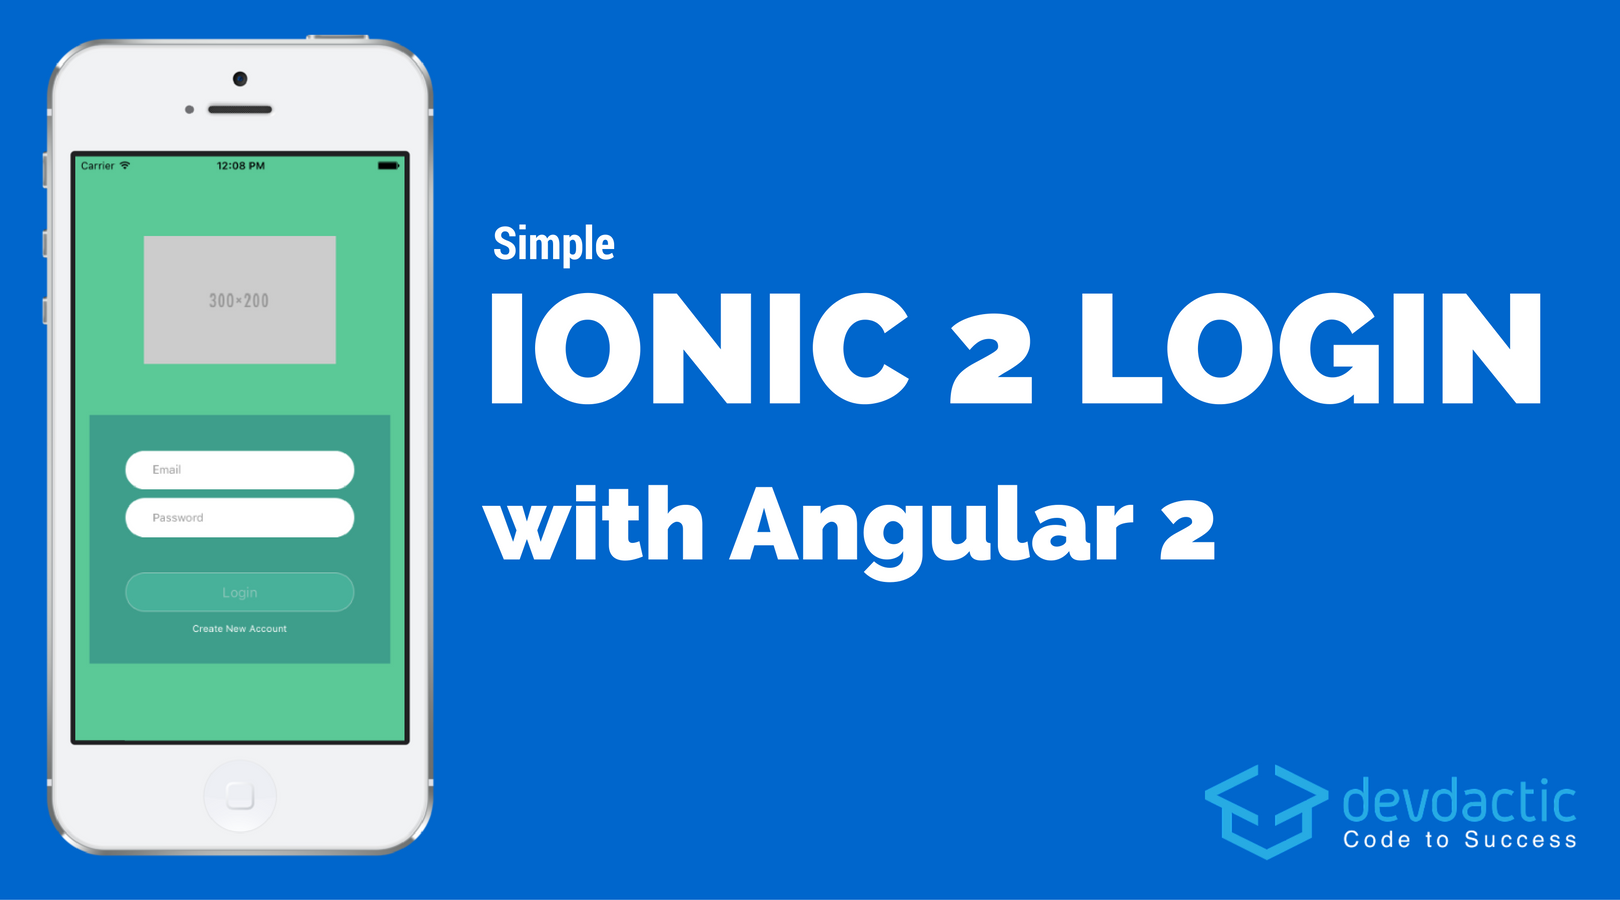 Simple Ionic Login with Angular 2+ - Devdactic